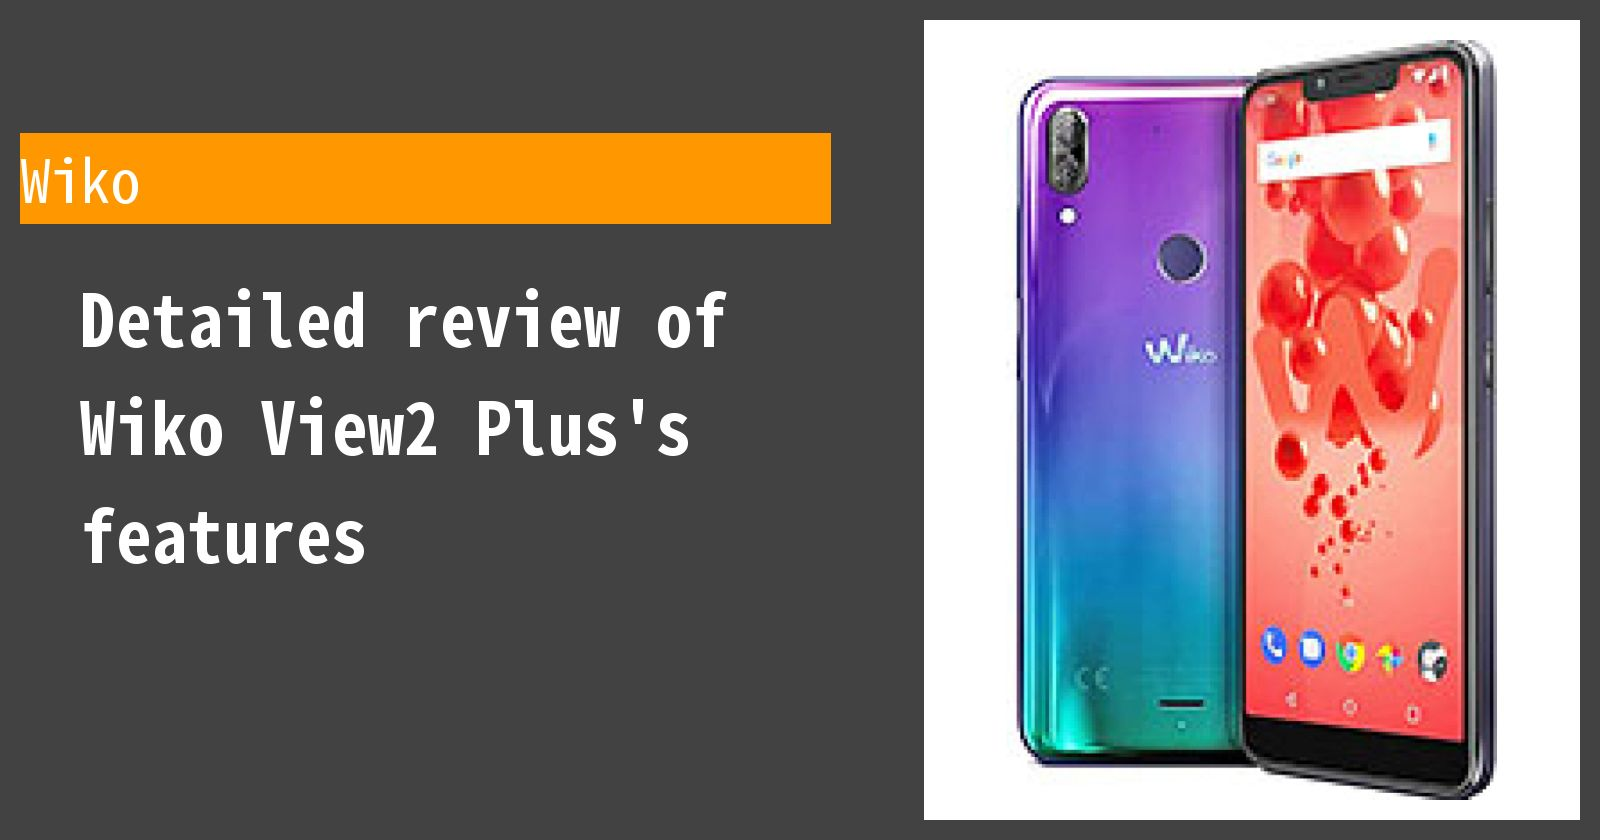 Detailed review of Wiko View2 Plus's features